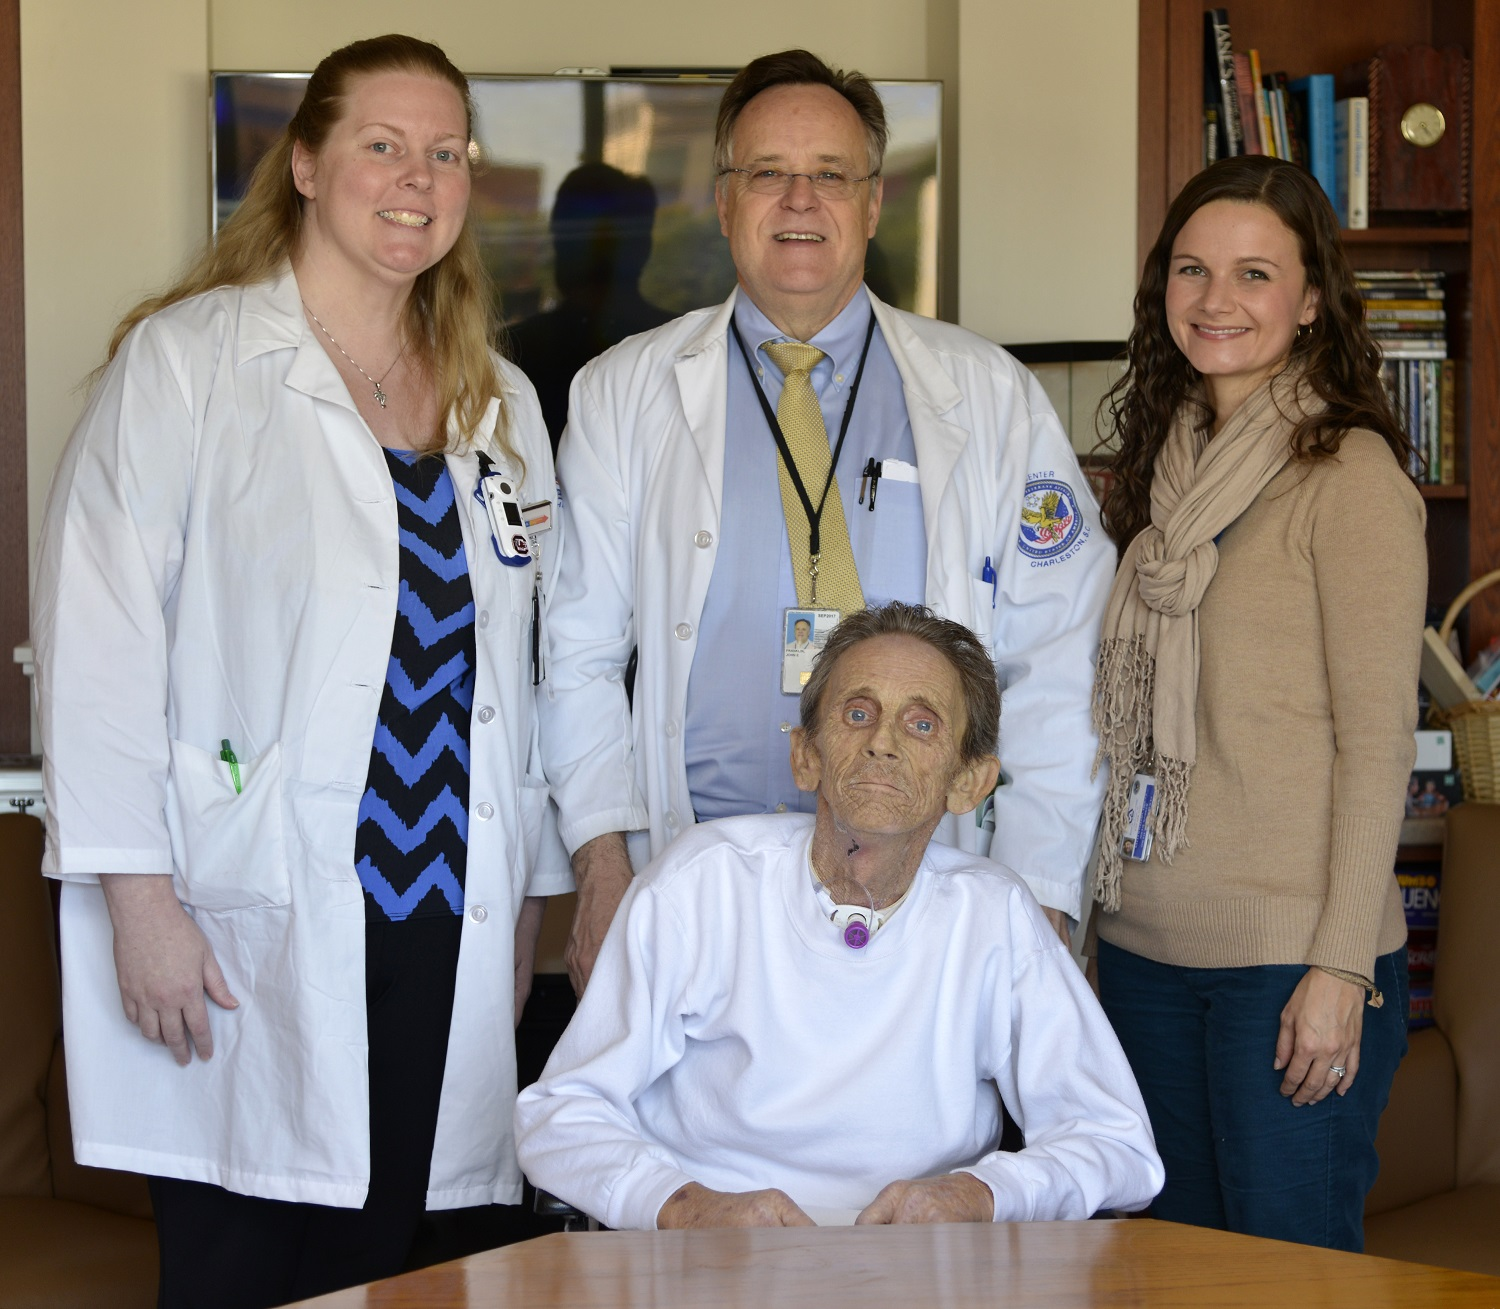 Veteran Robert Smith (seated) surrounded by some members of his care team: Jennifer Crosby, RN; John Franklin, MD; Kelli Williams, MSW